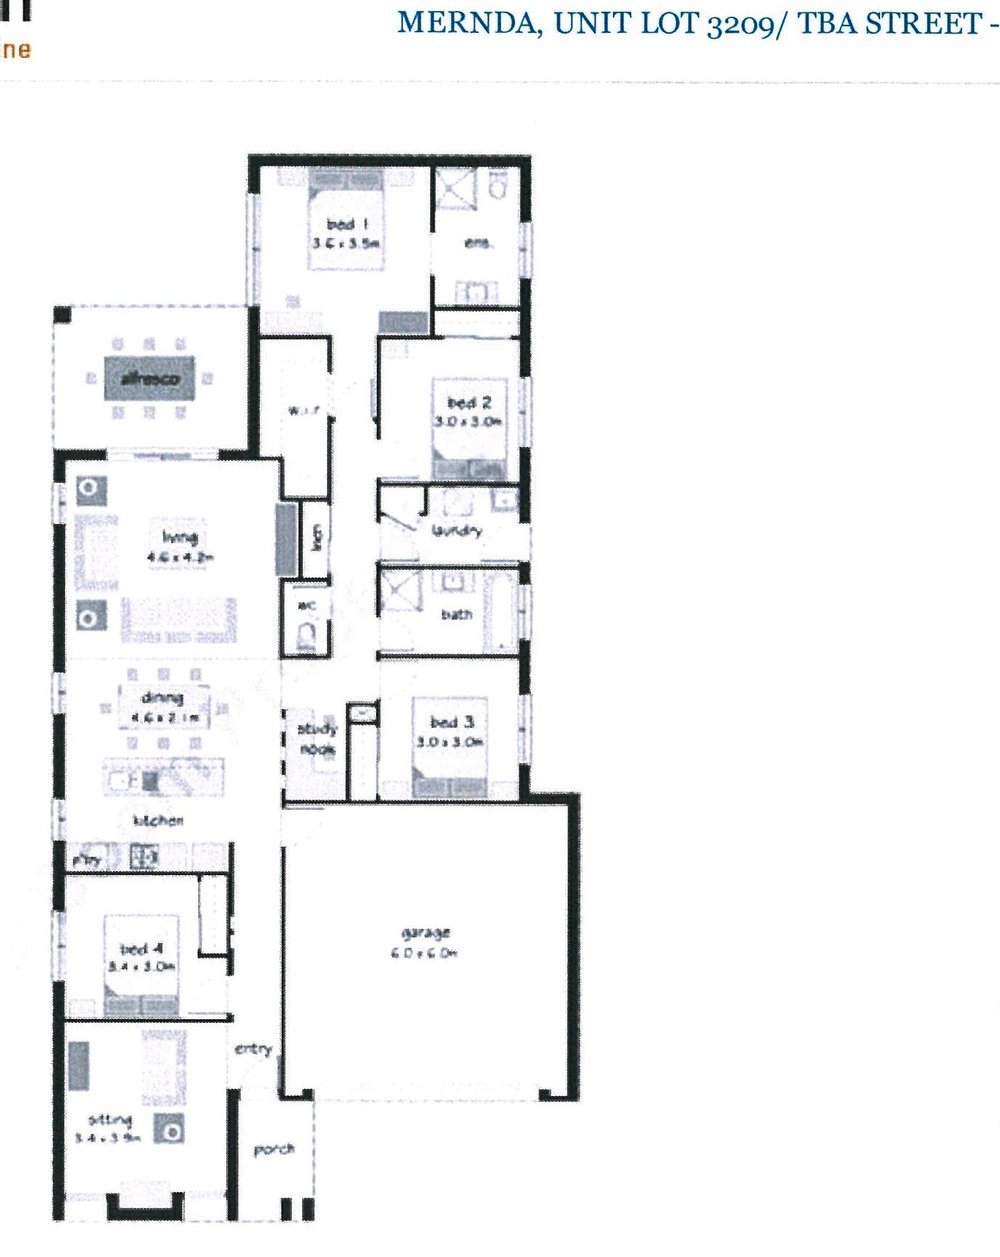 Floor Plan Lot 3209.jpg